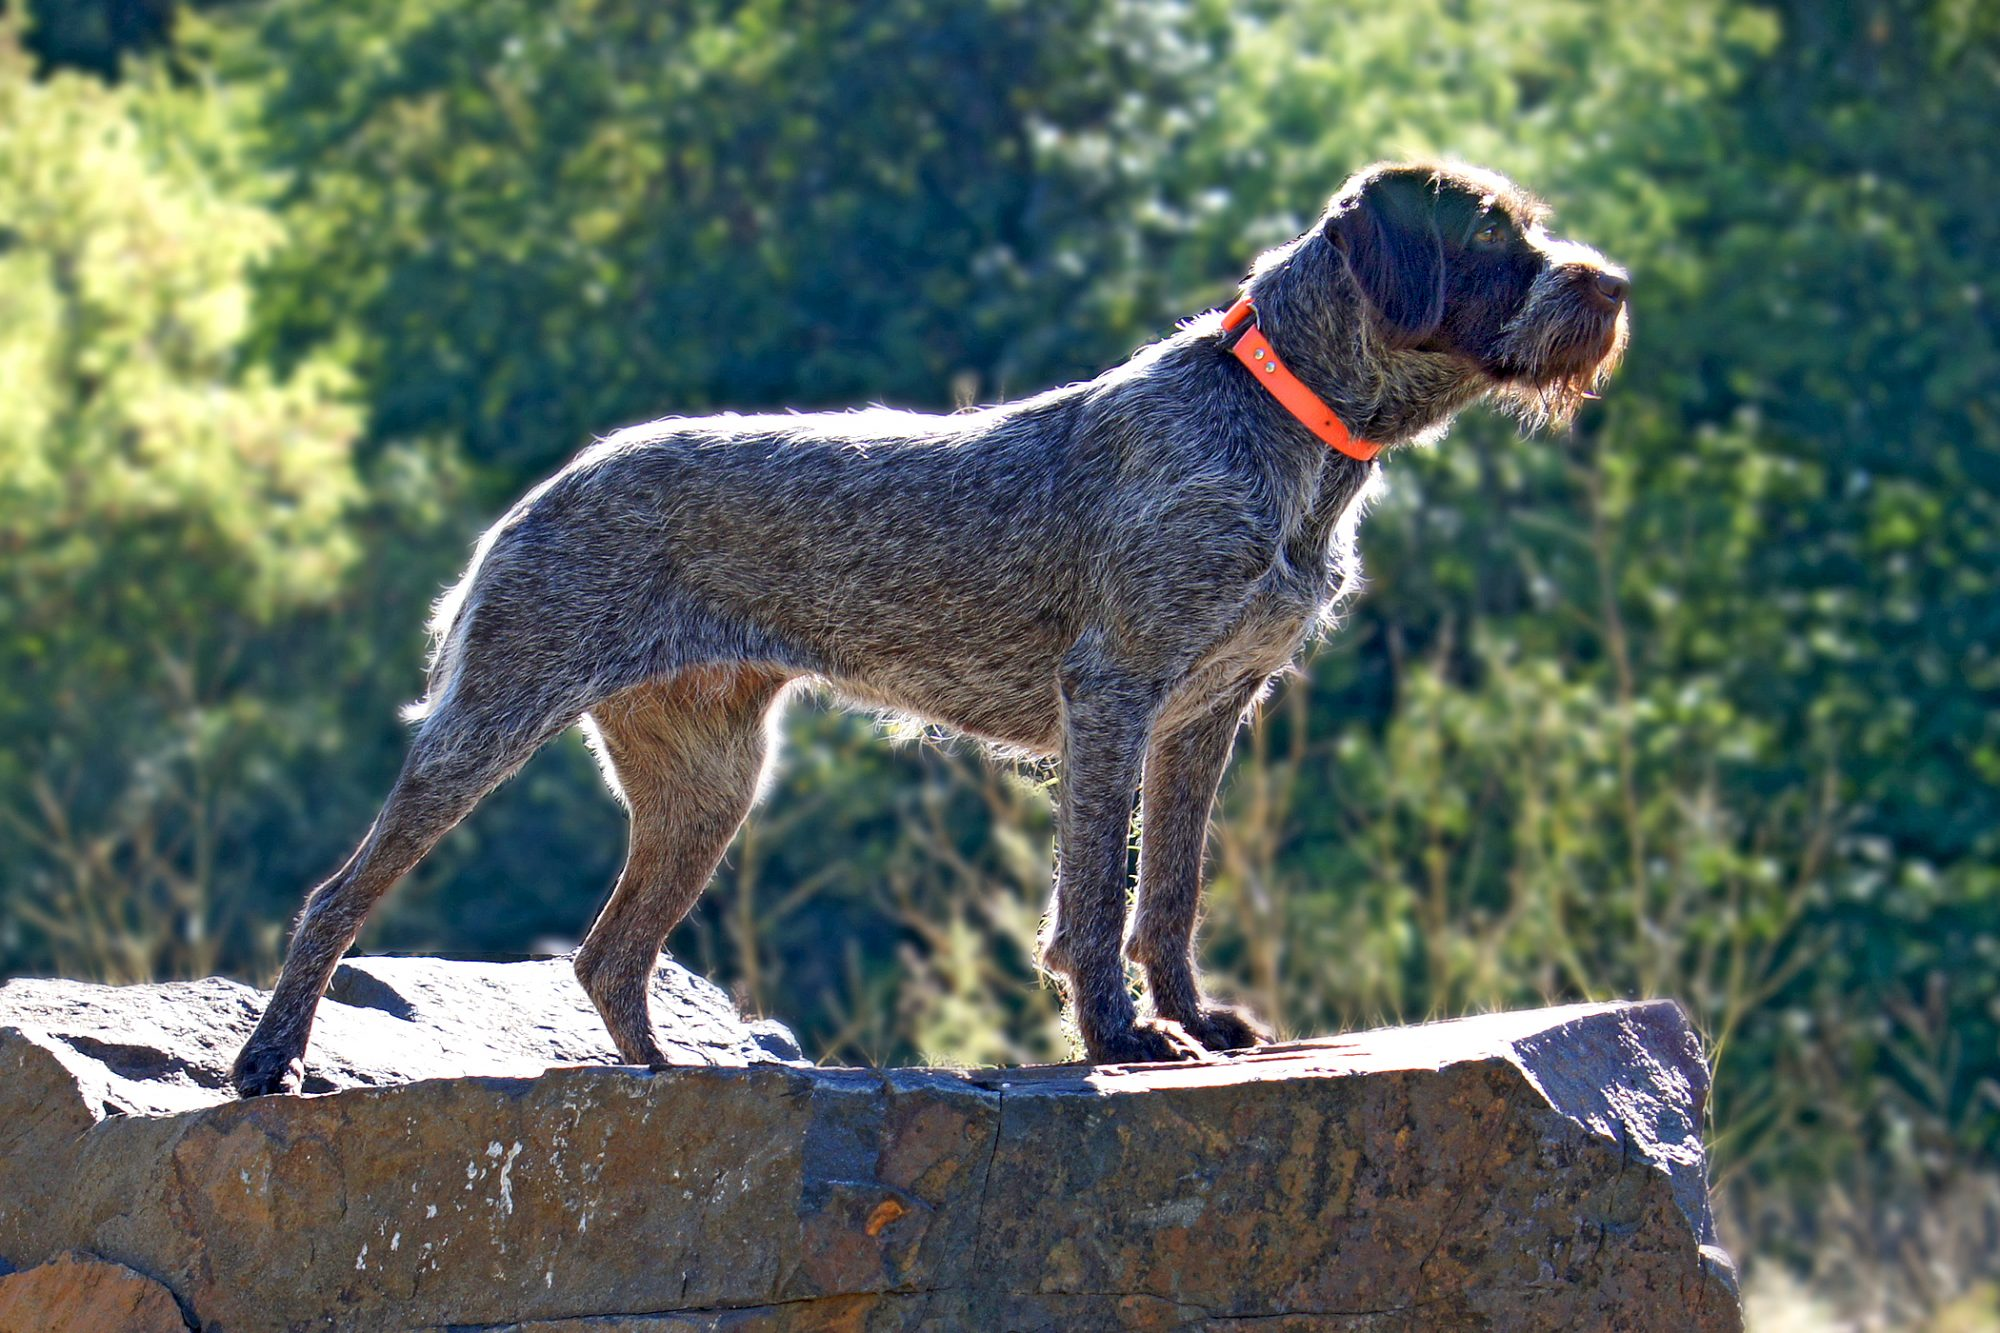 Medium shot of wirehaired pointing griffon standing on rock